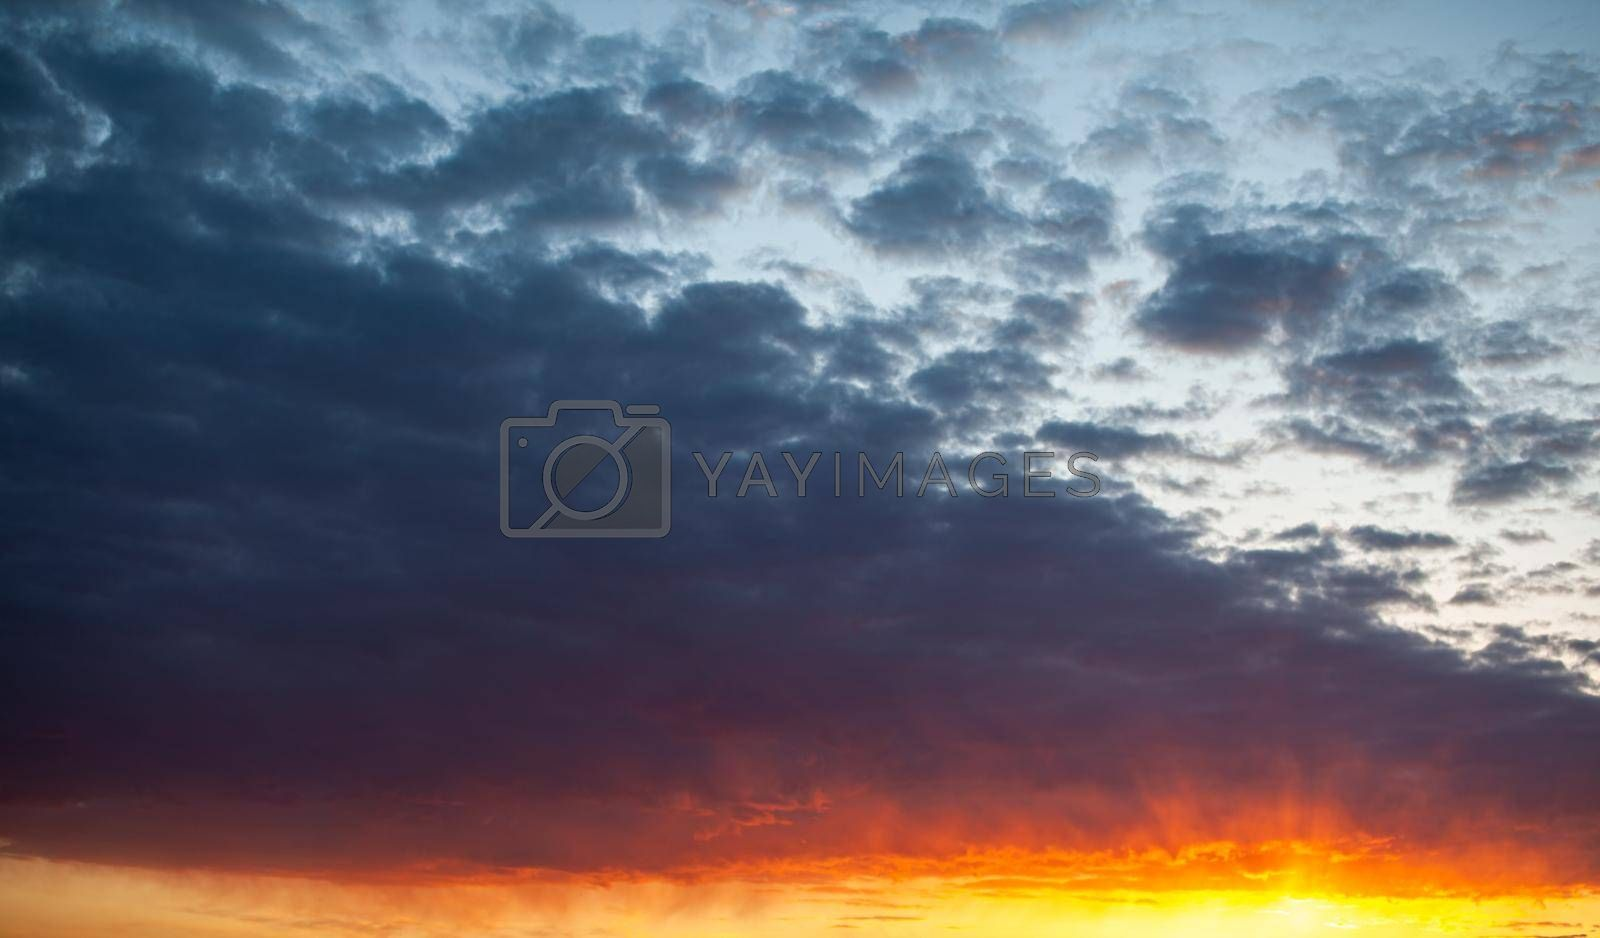 Colorful sunset or sunrise in the sky. The sky and clouds are painted in different delicate colors.